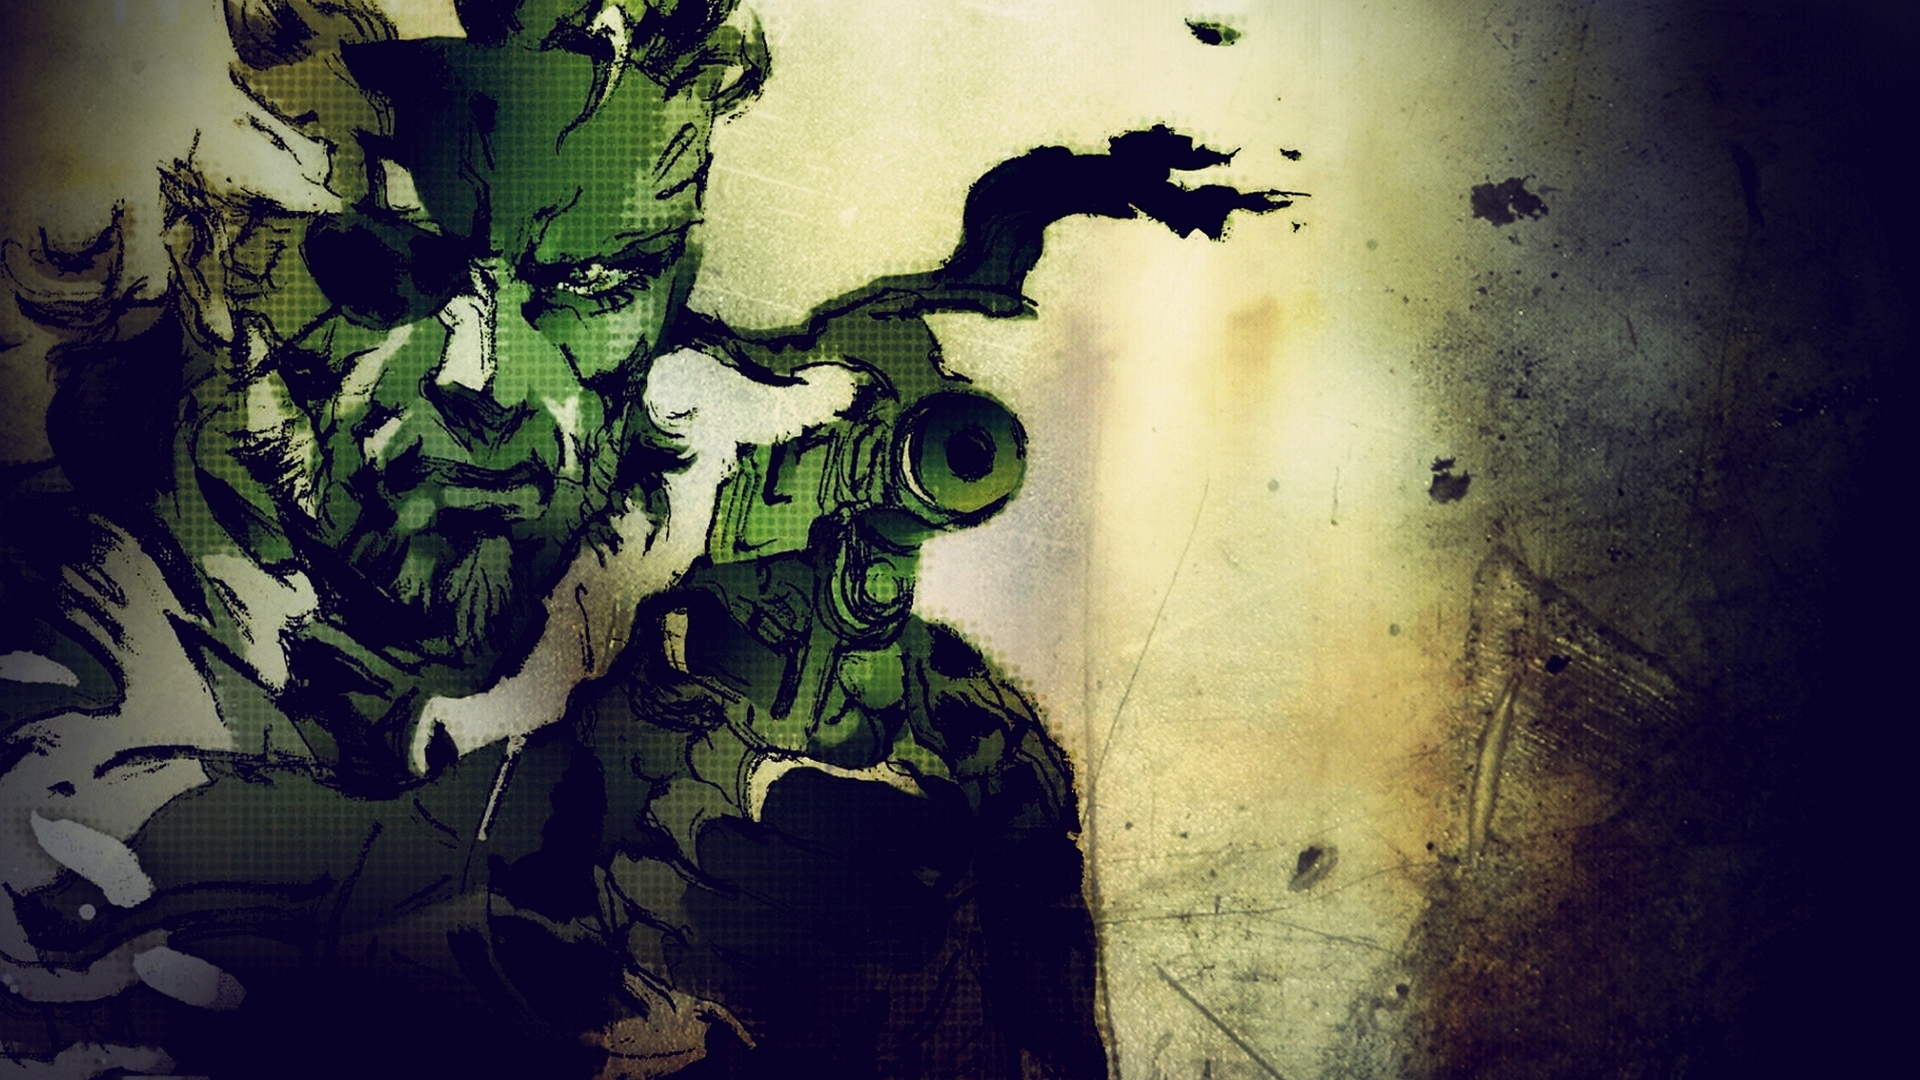 download wallpaper 1920x1080 metal gear solid, stealth-action, sony